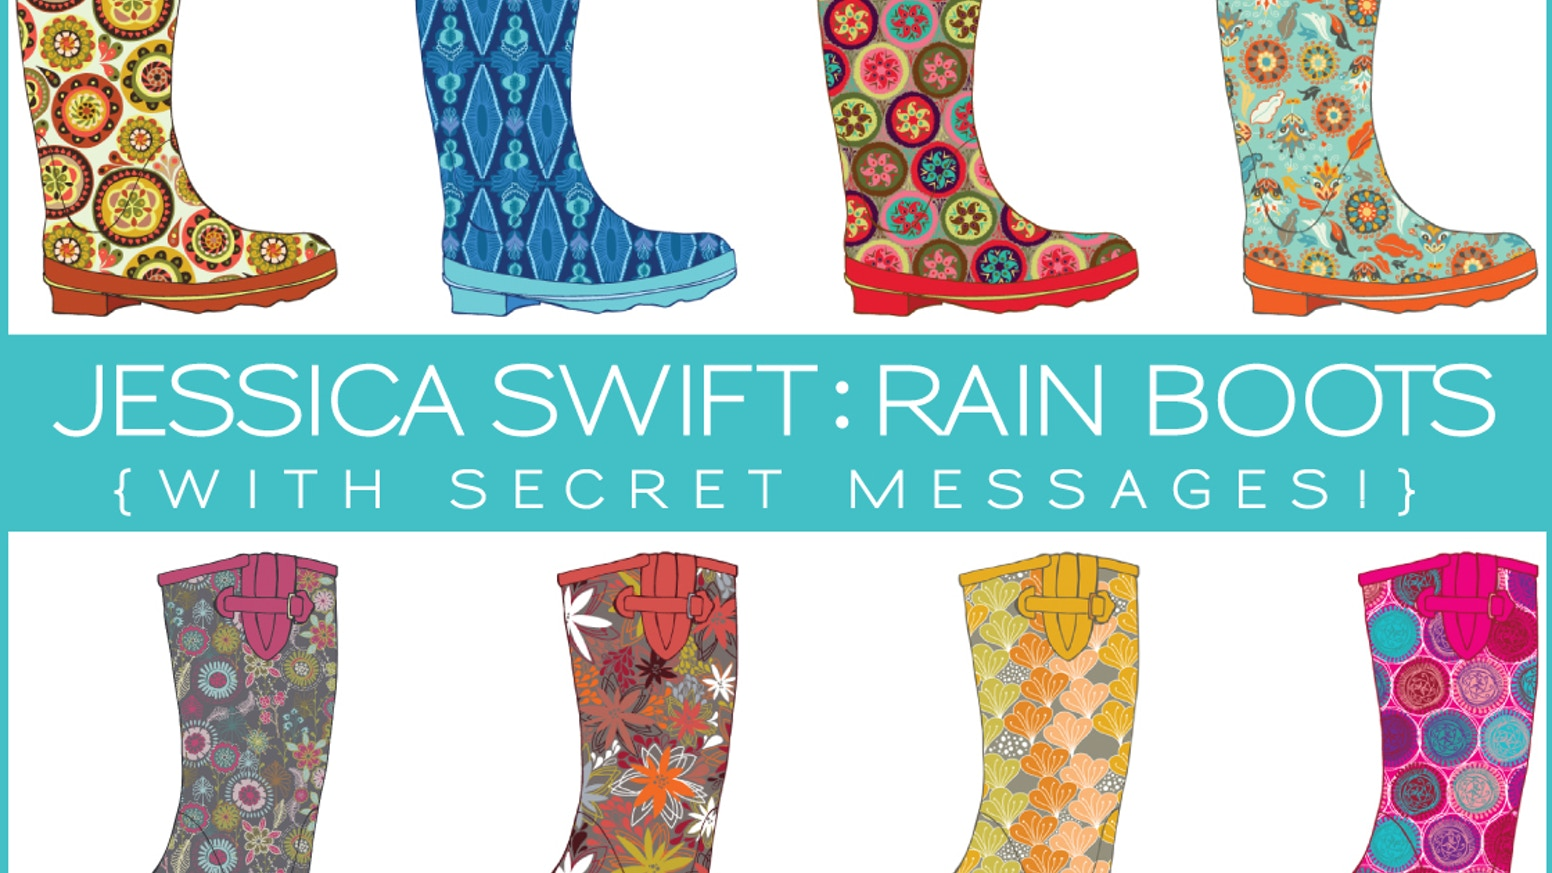 Jessica Swift: patterned rain boots (with secret messages